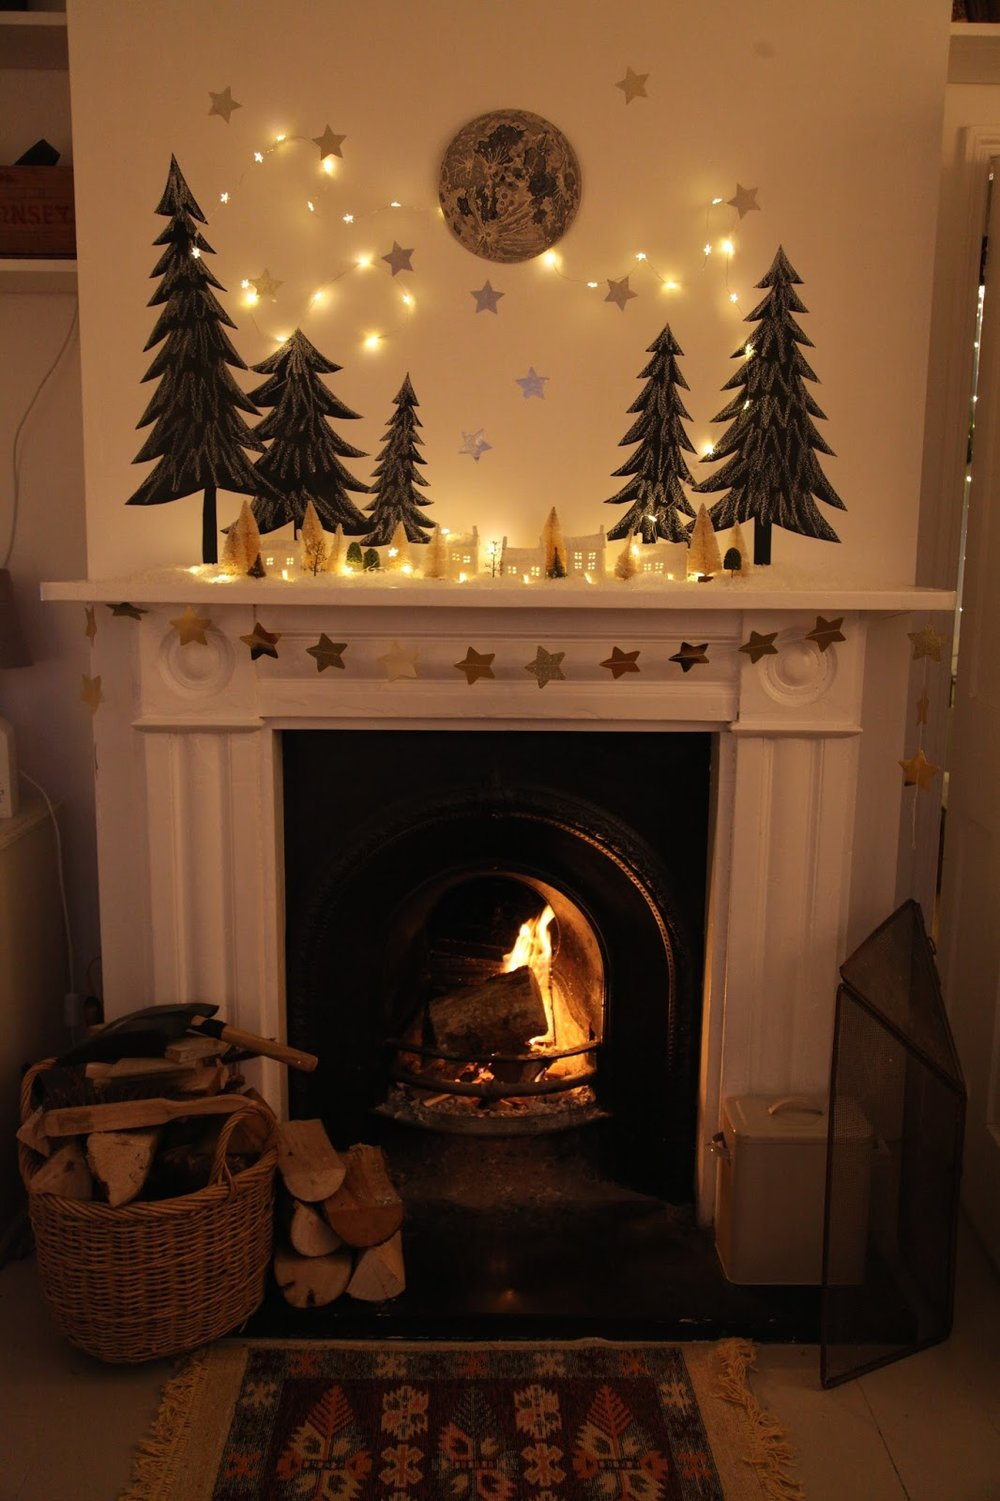 Twinkle Lights - Image www.junkaholique.comI just want to have twinkle lights all over my home, all year long. I think this is one of the simplest ways to create holiday magic inside our homes and turn ordinary decor into something magical.